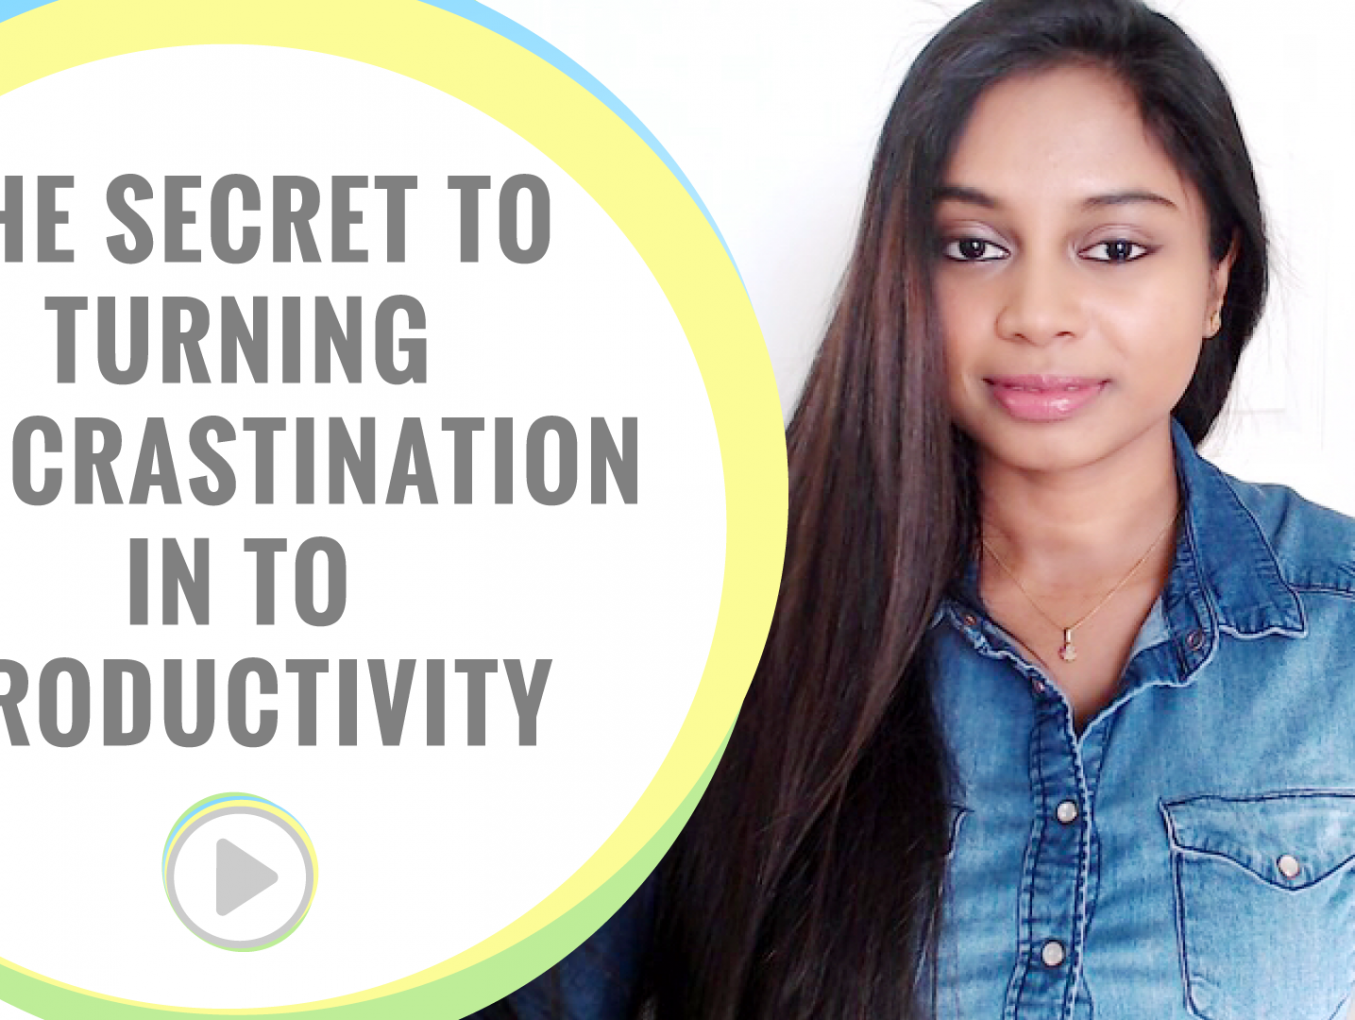 Be more productive - The secret to turning procrastination in to productivity